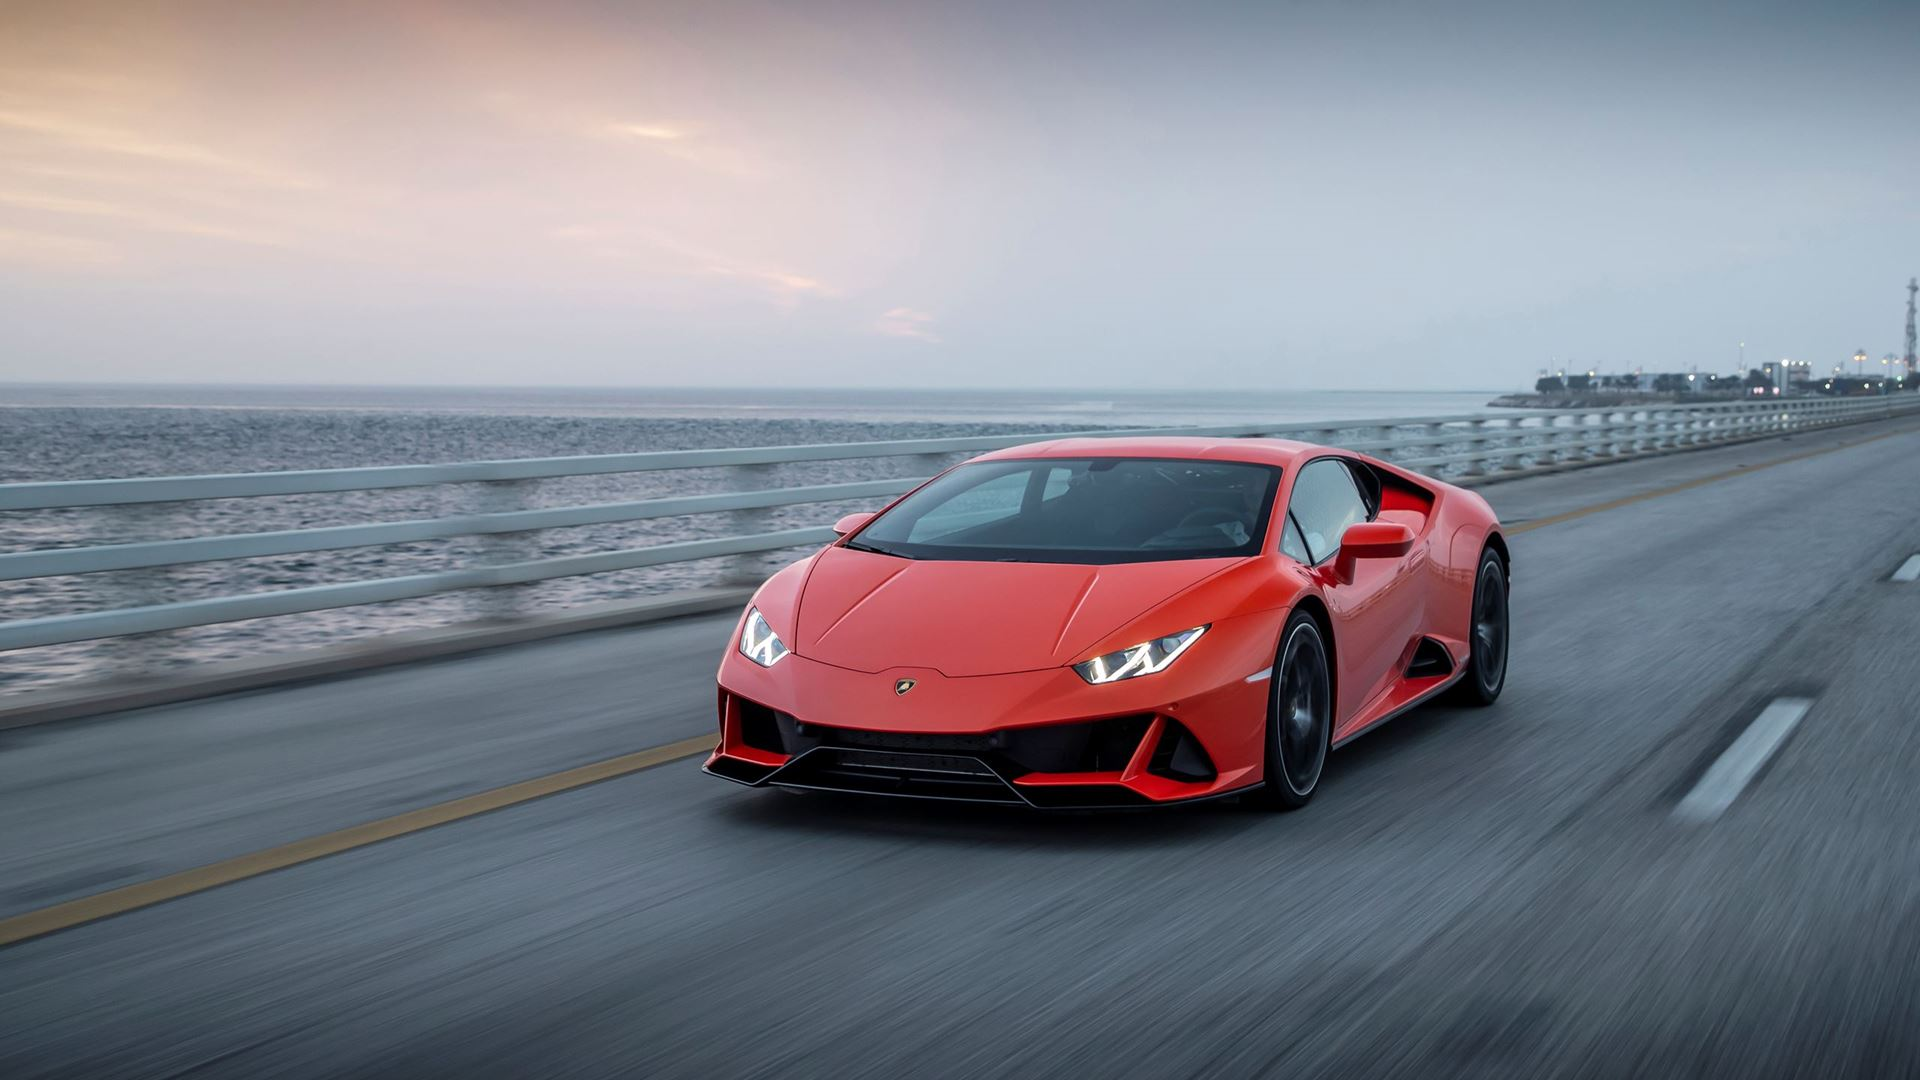 New suite of connected services for the Lamborghini Huracán EVO range: Automobili Lamborghini is first to incorporate comprehensive in-car control by Amazon Alexa - Image 3